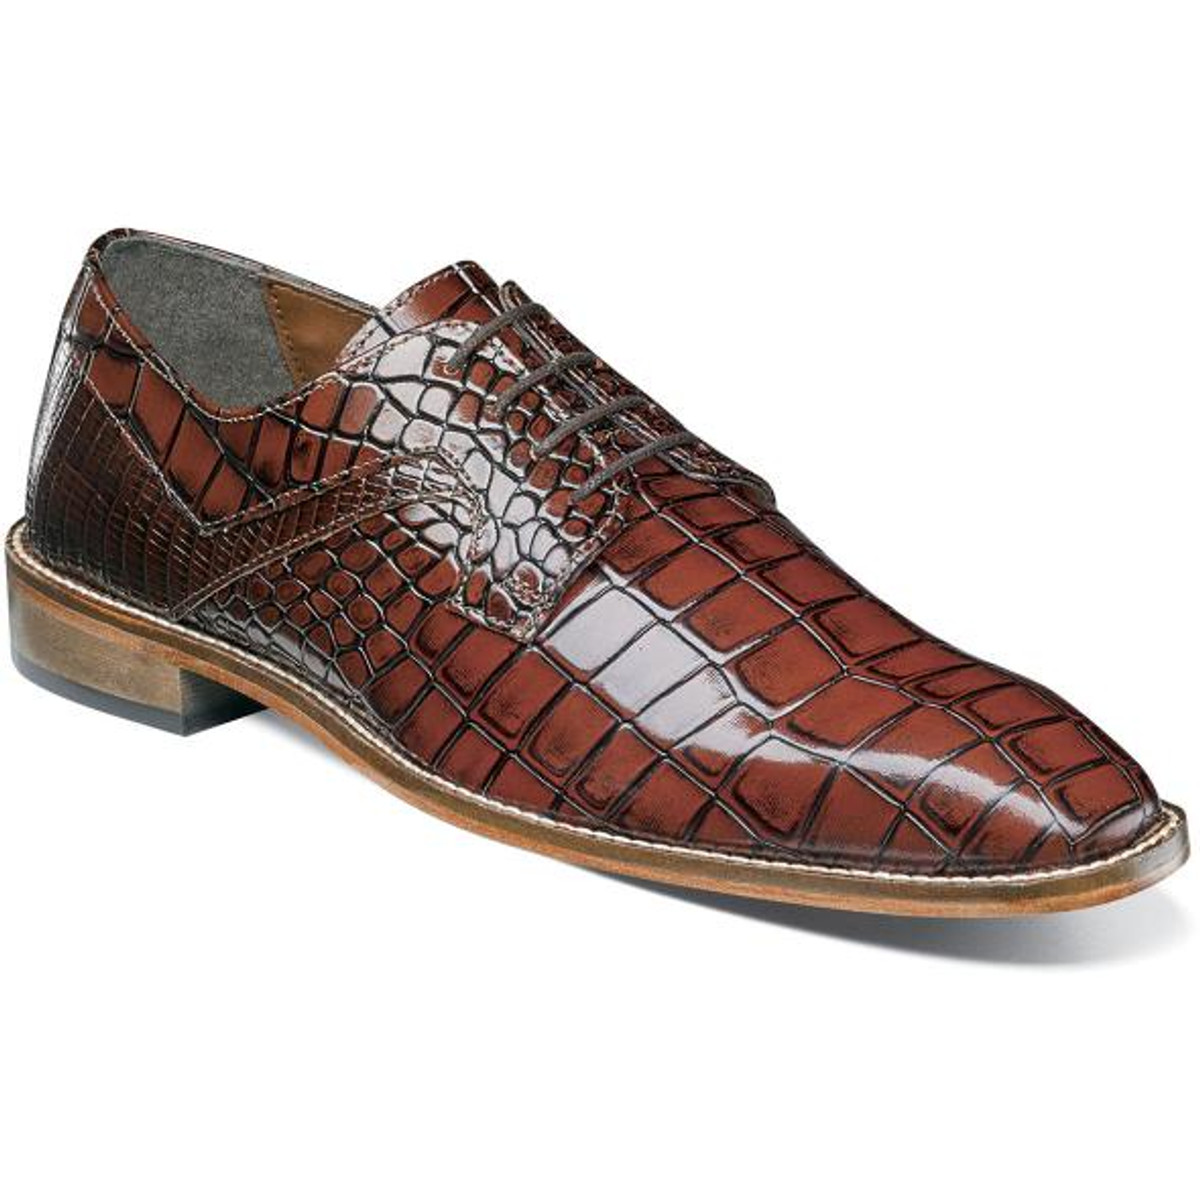 Stacy Adams Cognac Brown Alligator Texture Dress Shoes 25211-229